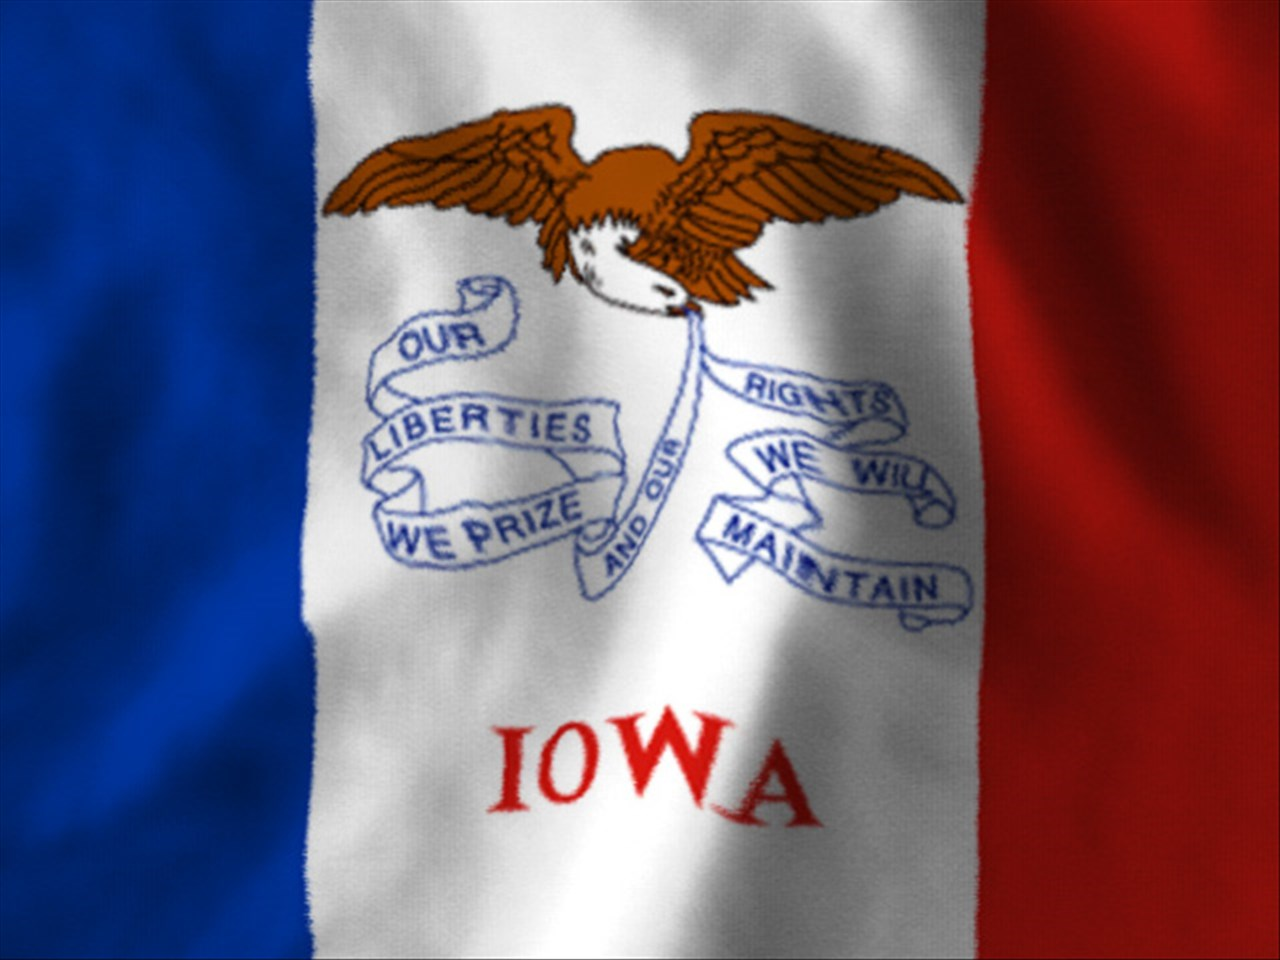 Iowa Flag_1552674436372.jpeg.jpg